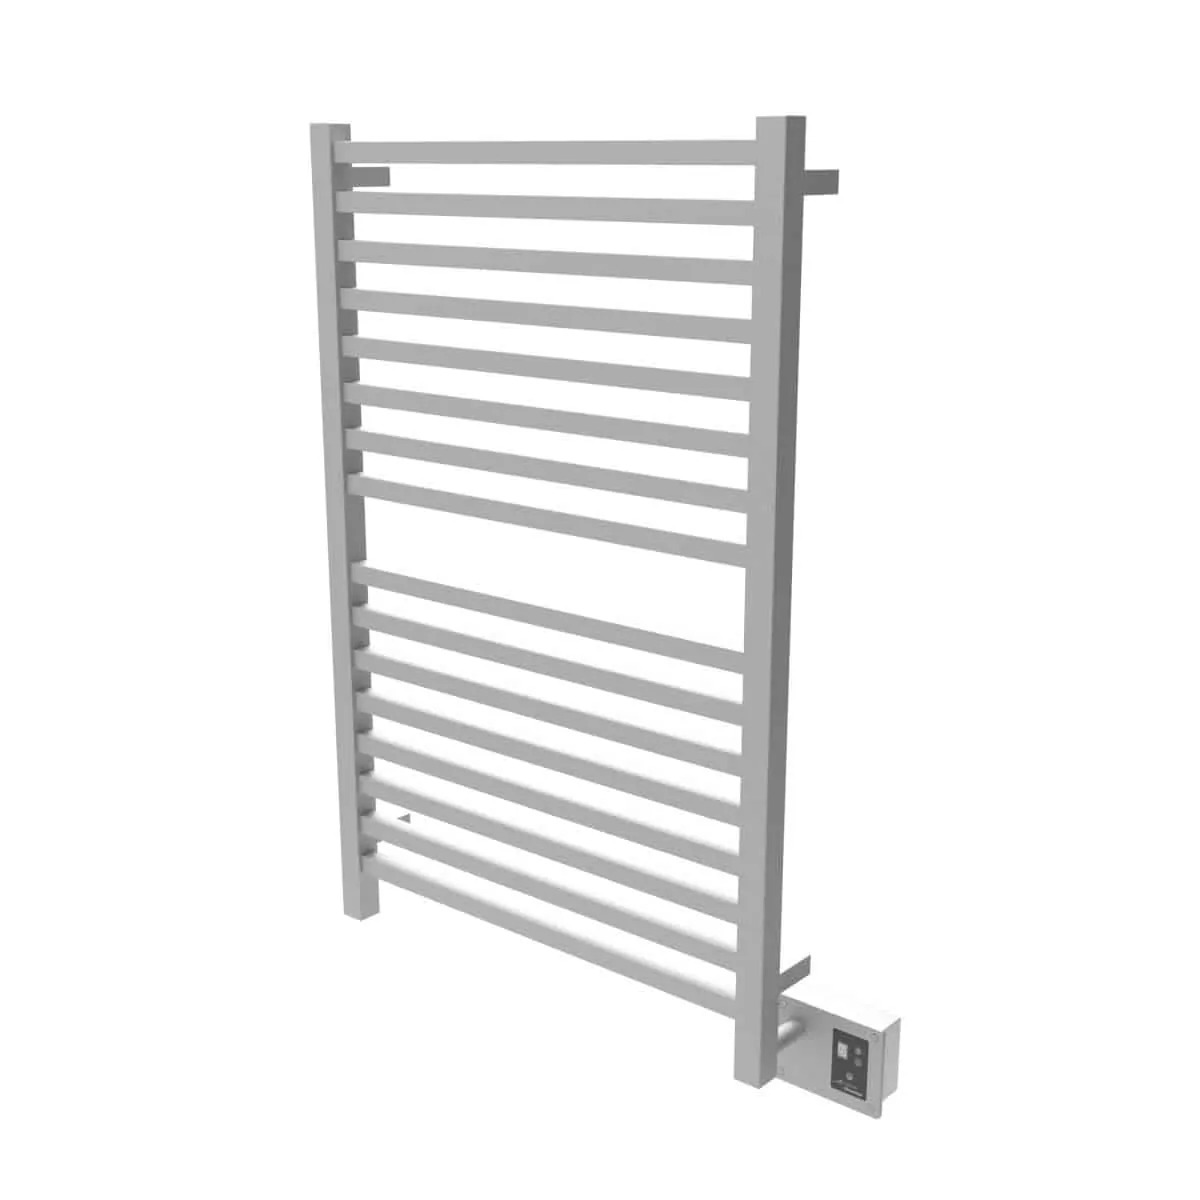 Amba Q2842B Quadro Heated Towel Rack - Brushed